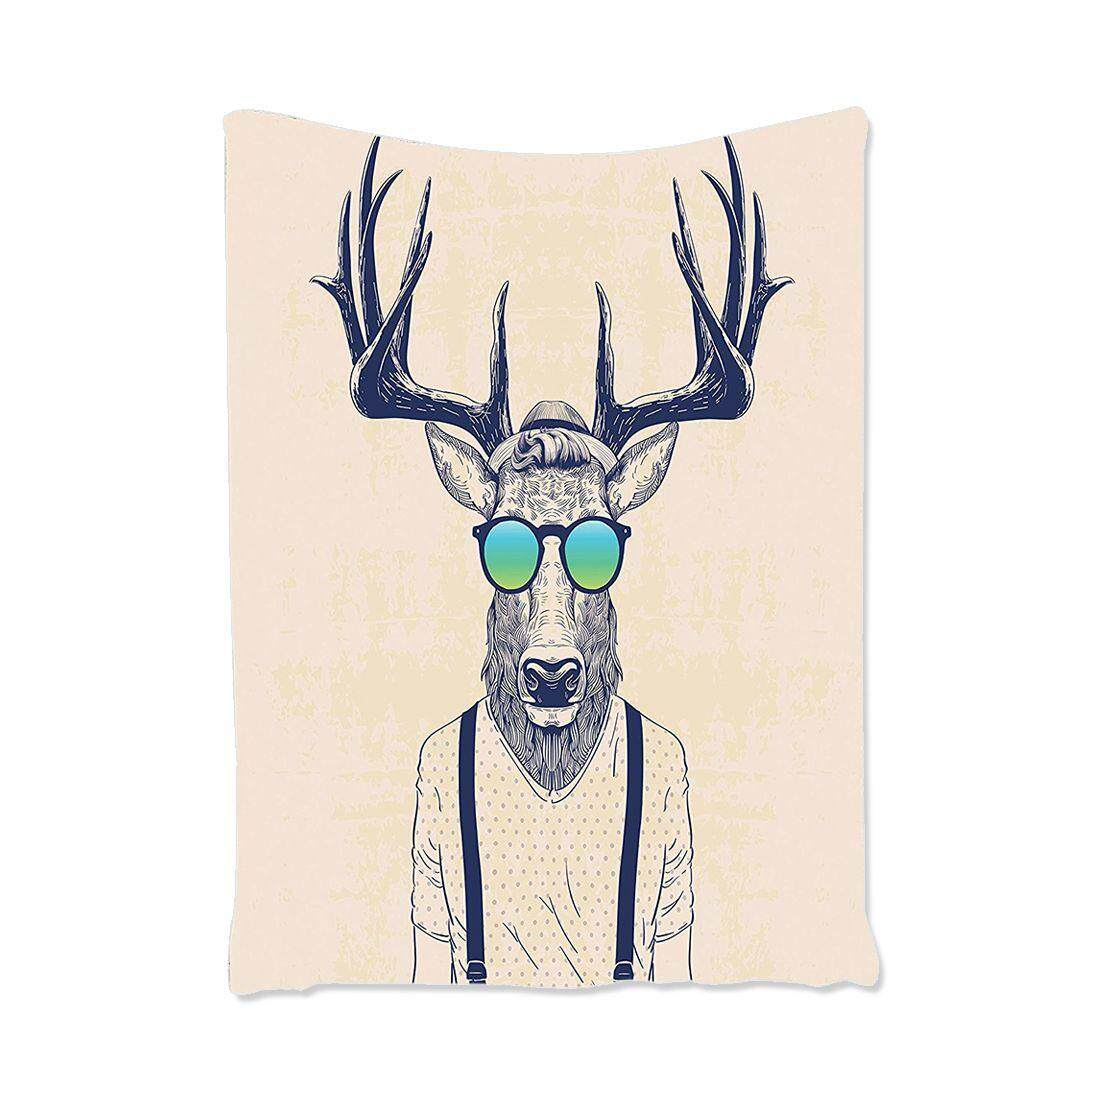 Animal Tapestry Deer Decor Fashion Creative Fun Animal Theme Art Print, Bedroom Living Room Dorm Wall Hanging Tapestry, 100*150cm By Jonesmayer